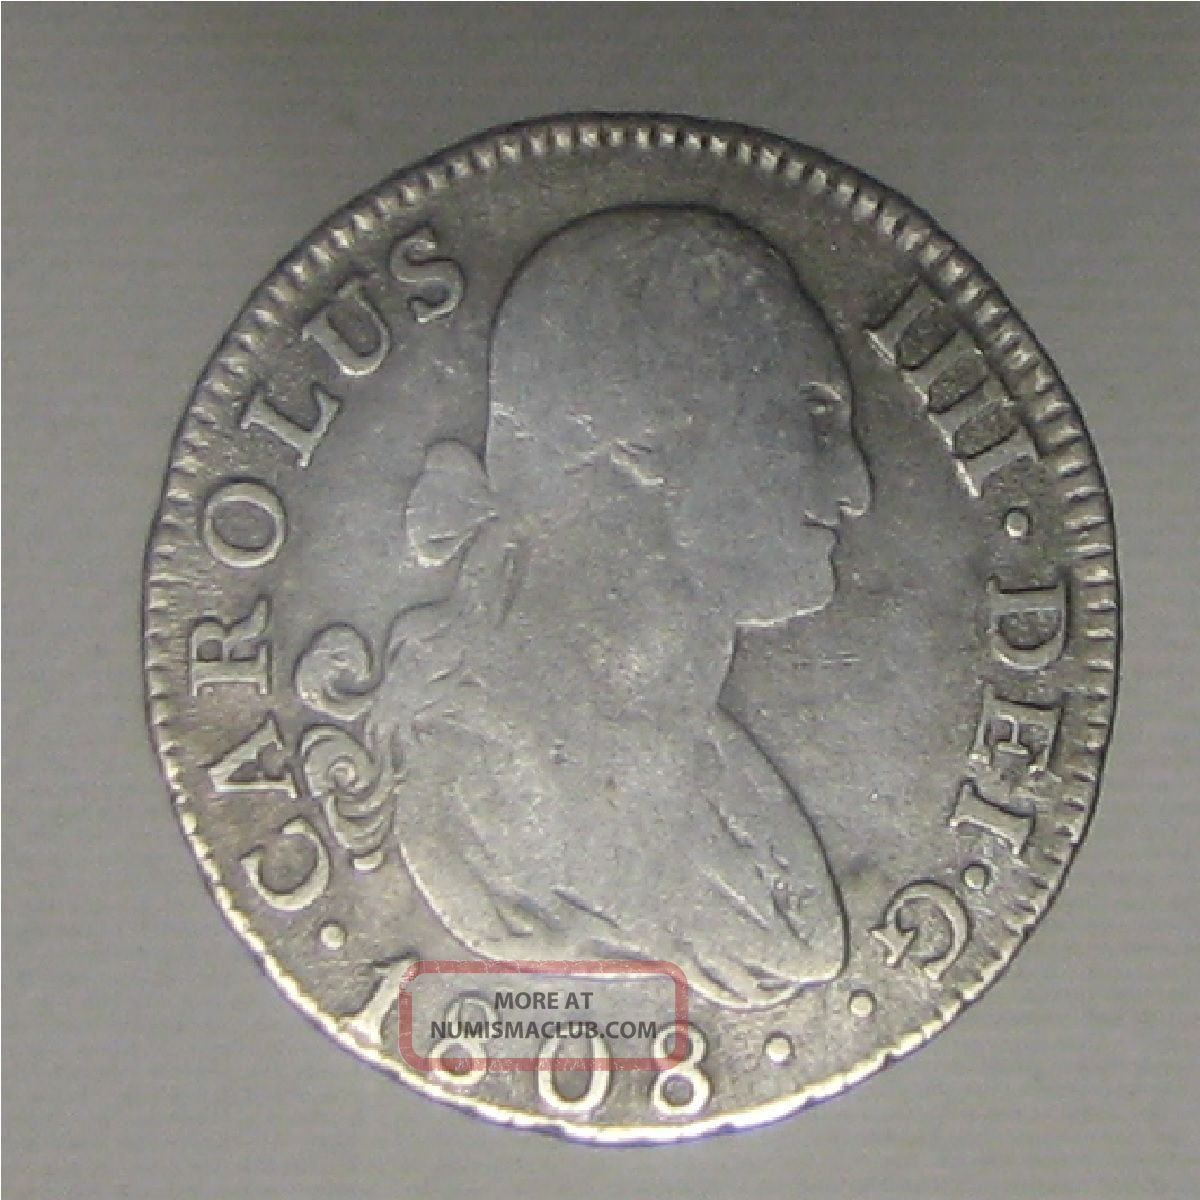 Rare 1808 Spanish 2 Reales Silver Coin From Madrid